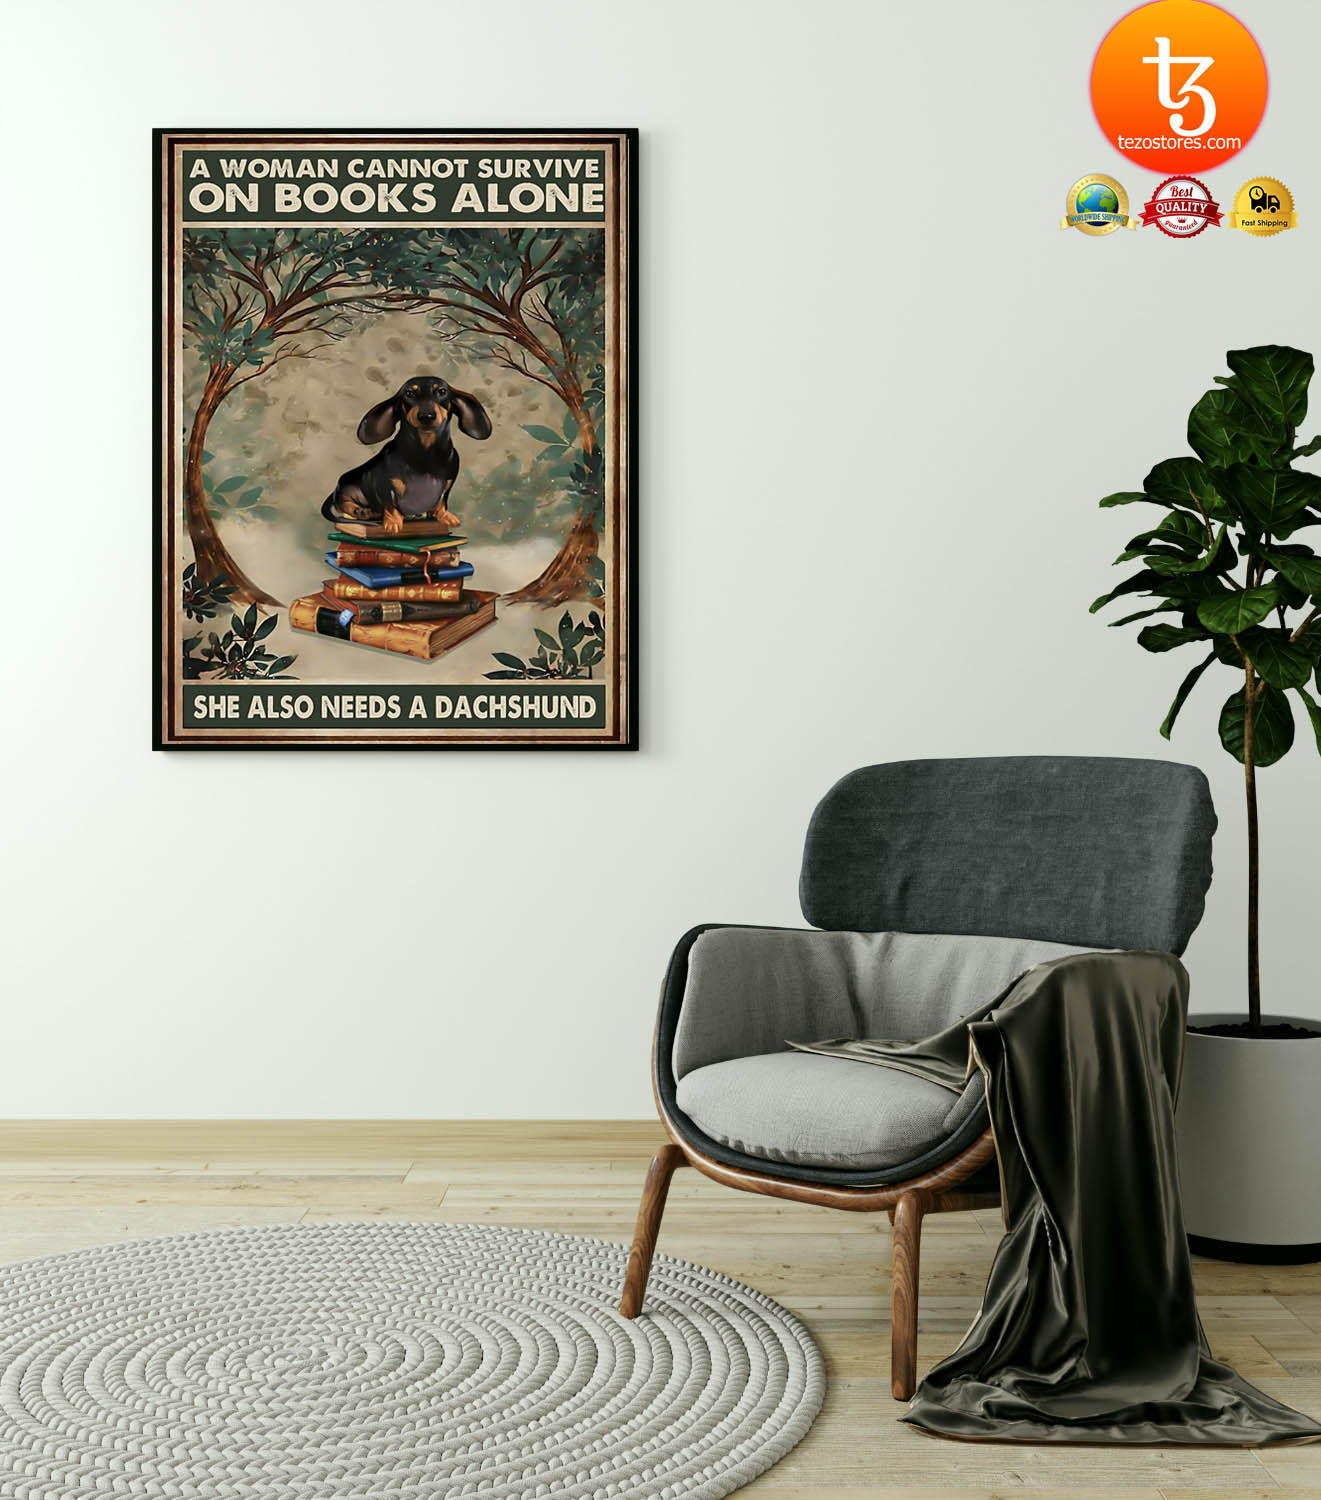 A woman cannot survive on the book alone she need dachshund poster 21